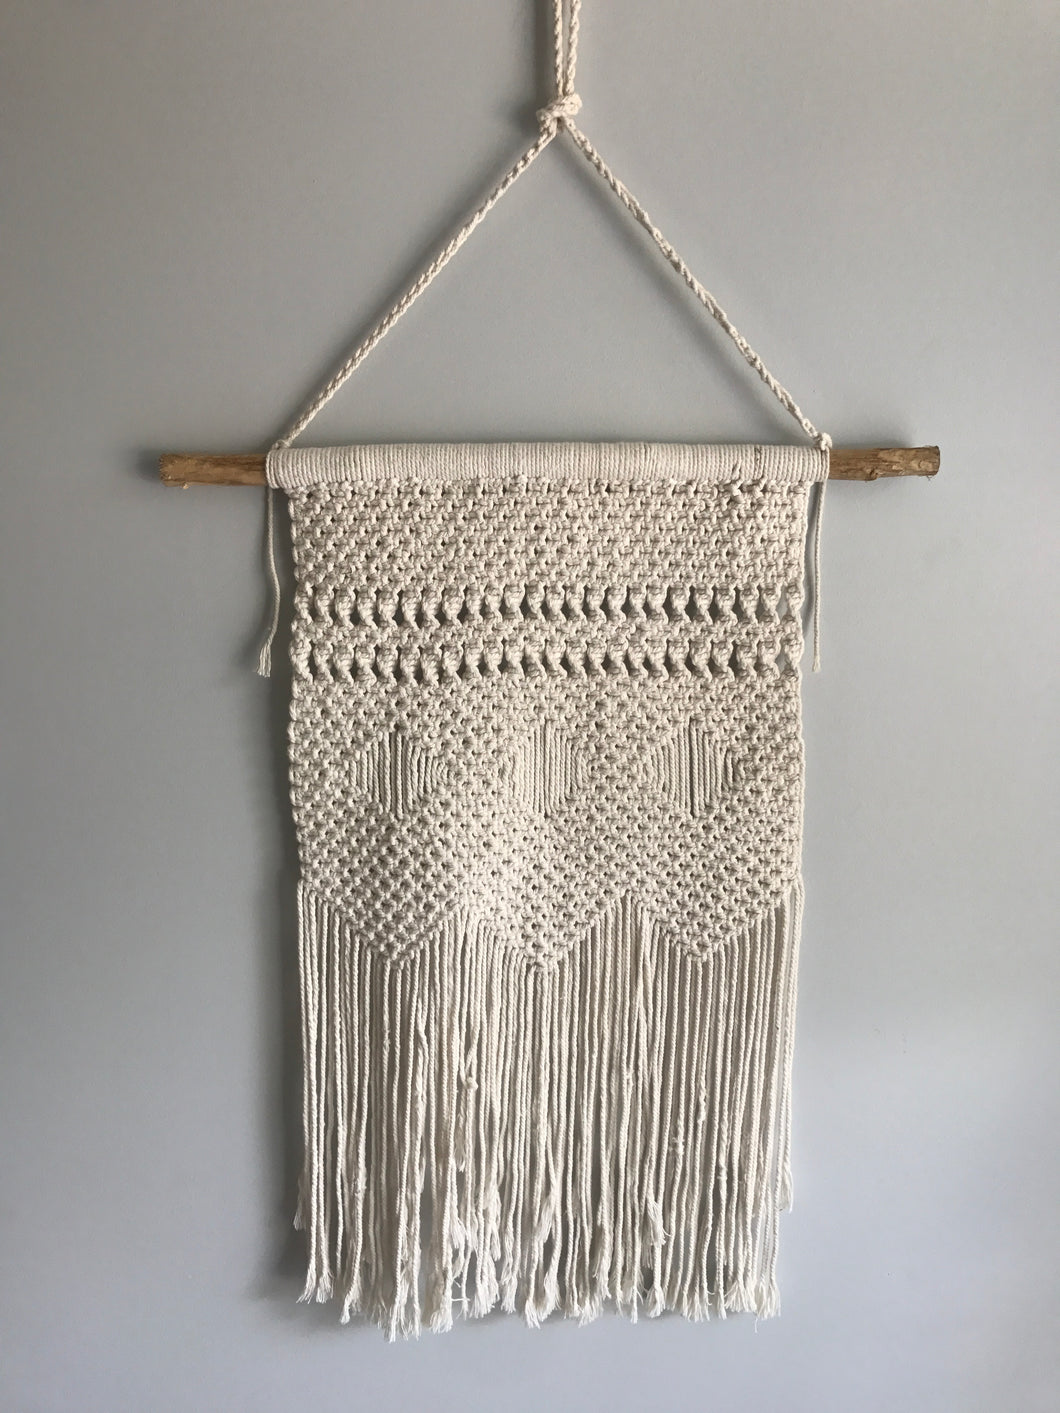 The Outlaw Macrame